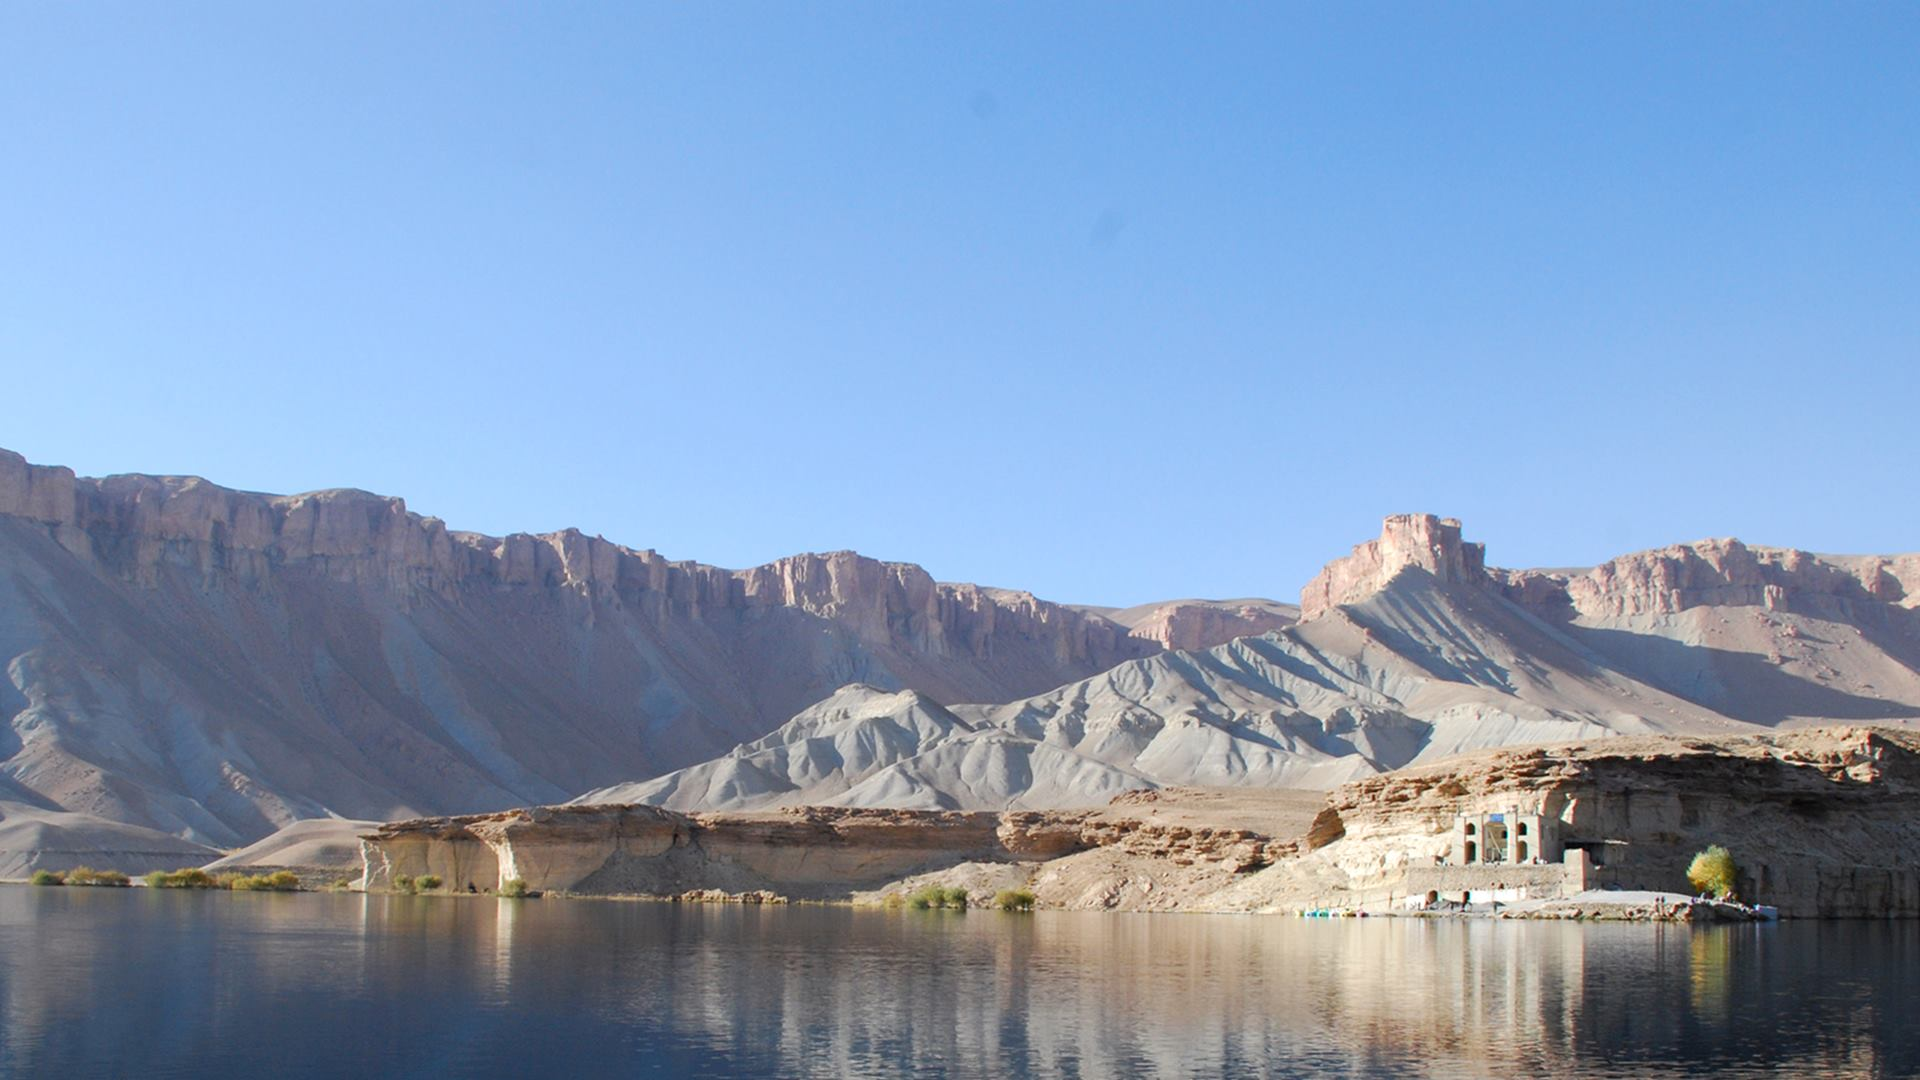 Band-E-Amir-National-Park-In-Afghanistan-Wallpaper